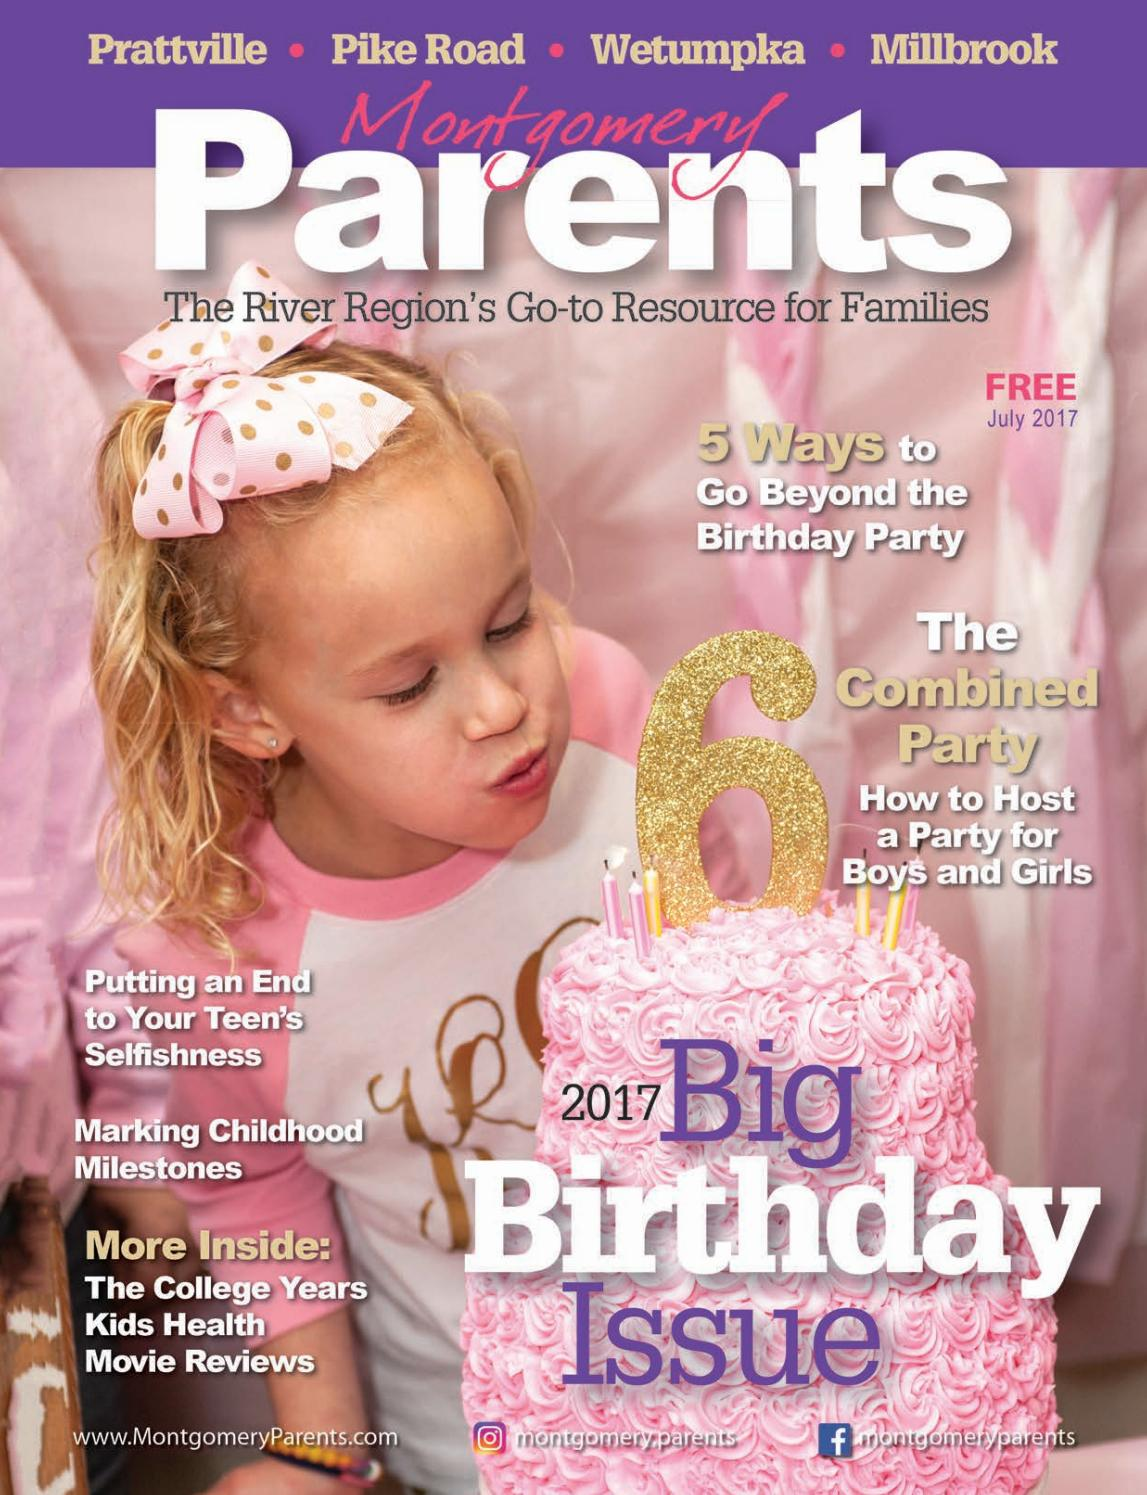 Parents magazine movie reviews